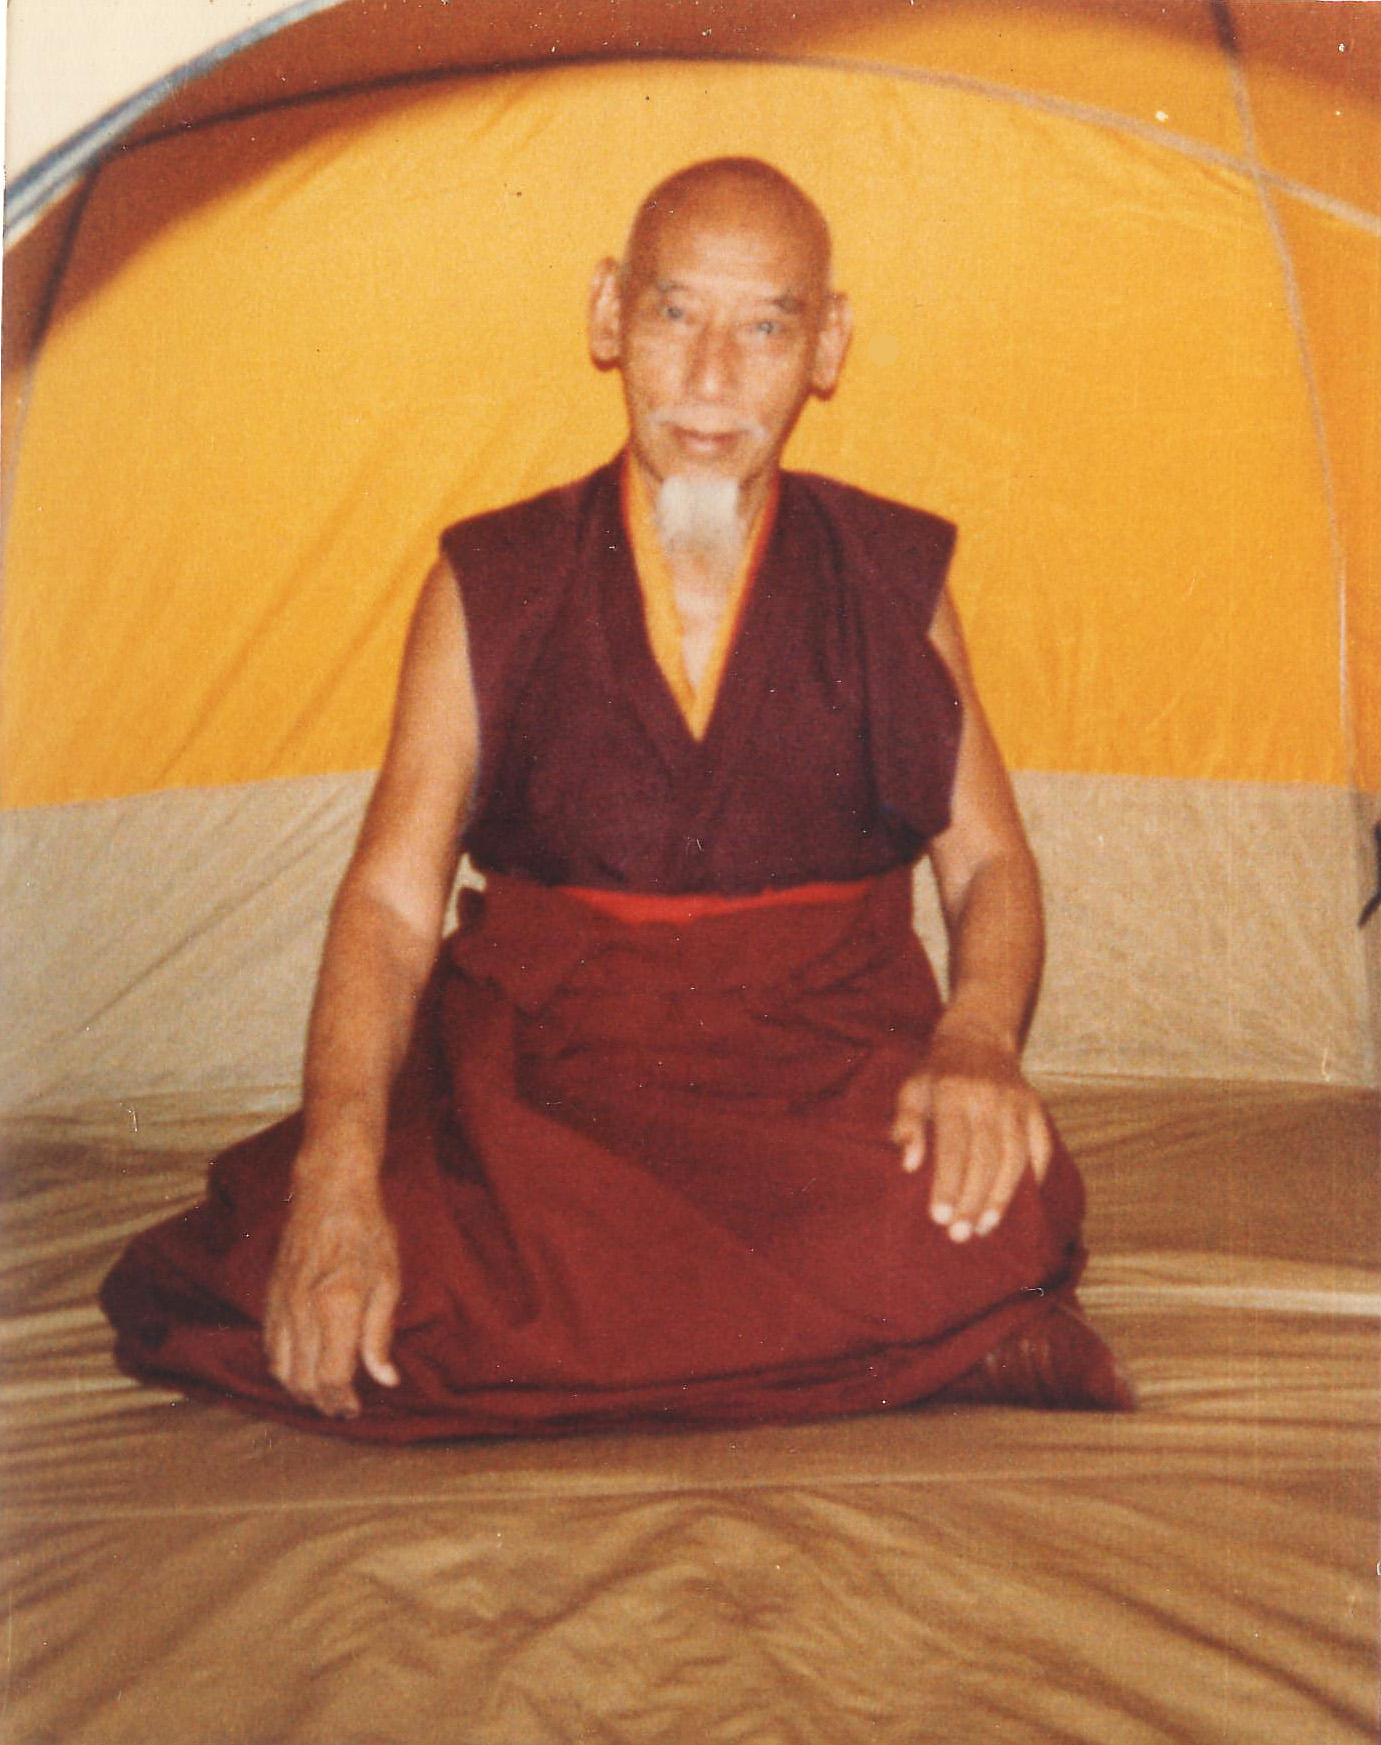 I myself took this picture of His Holiness Kyabje Zong Rinpoche in the back yard of Thubten Dhargye Ling Dharma Centre in Los Angeles where I was living and Zong Rinpoche was staying. Rinpoche was very affectionate towards me and allowed me many special privileges. I was very fortunate. Click to enlarge